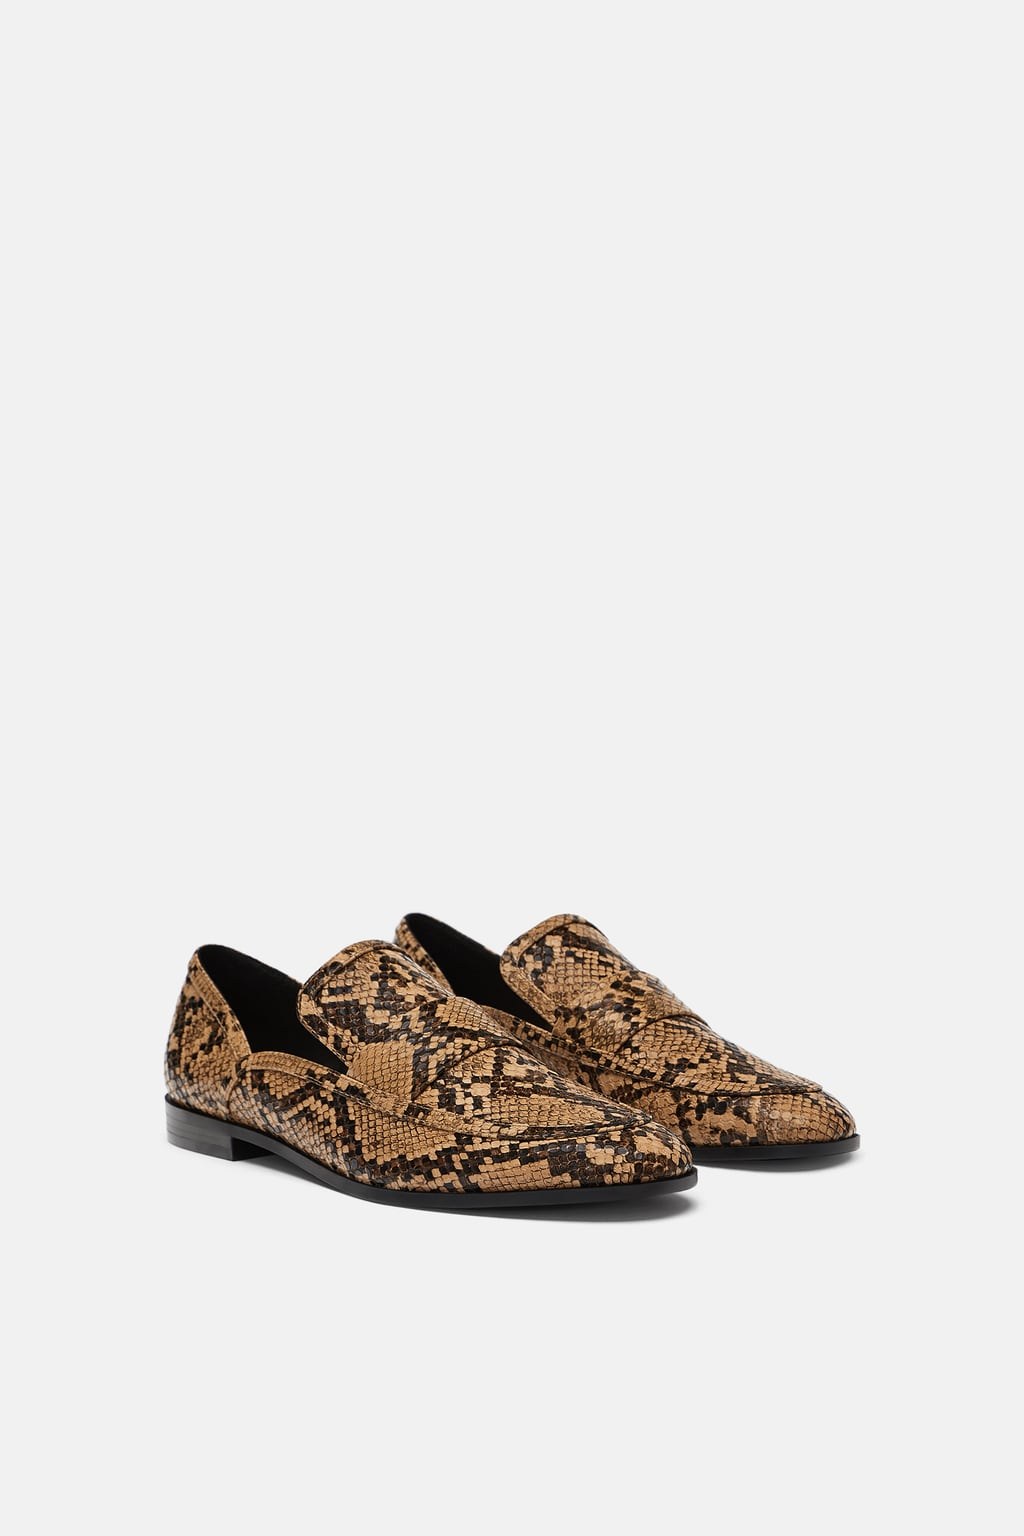 PRINTED SNAKESKIN LOAFERS $49.90 -